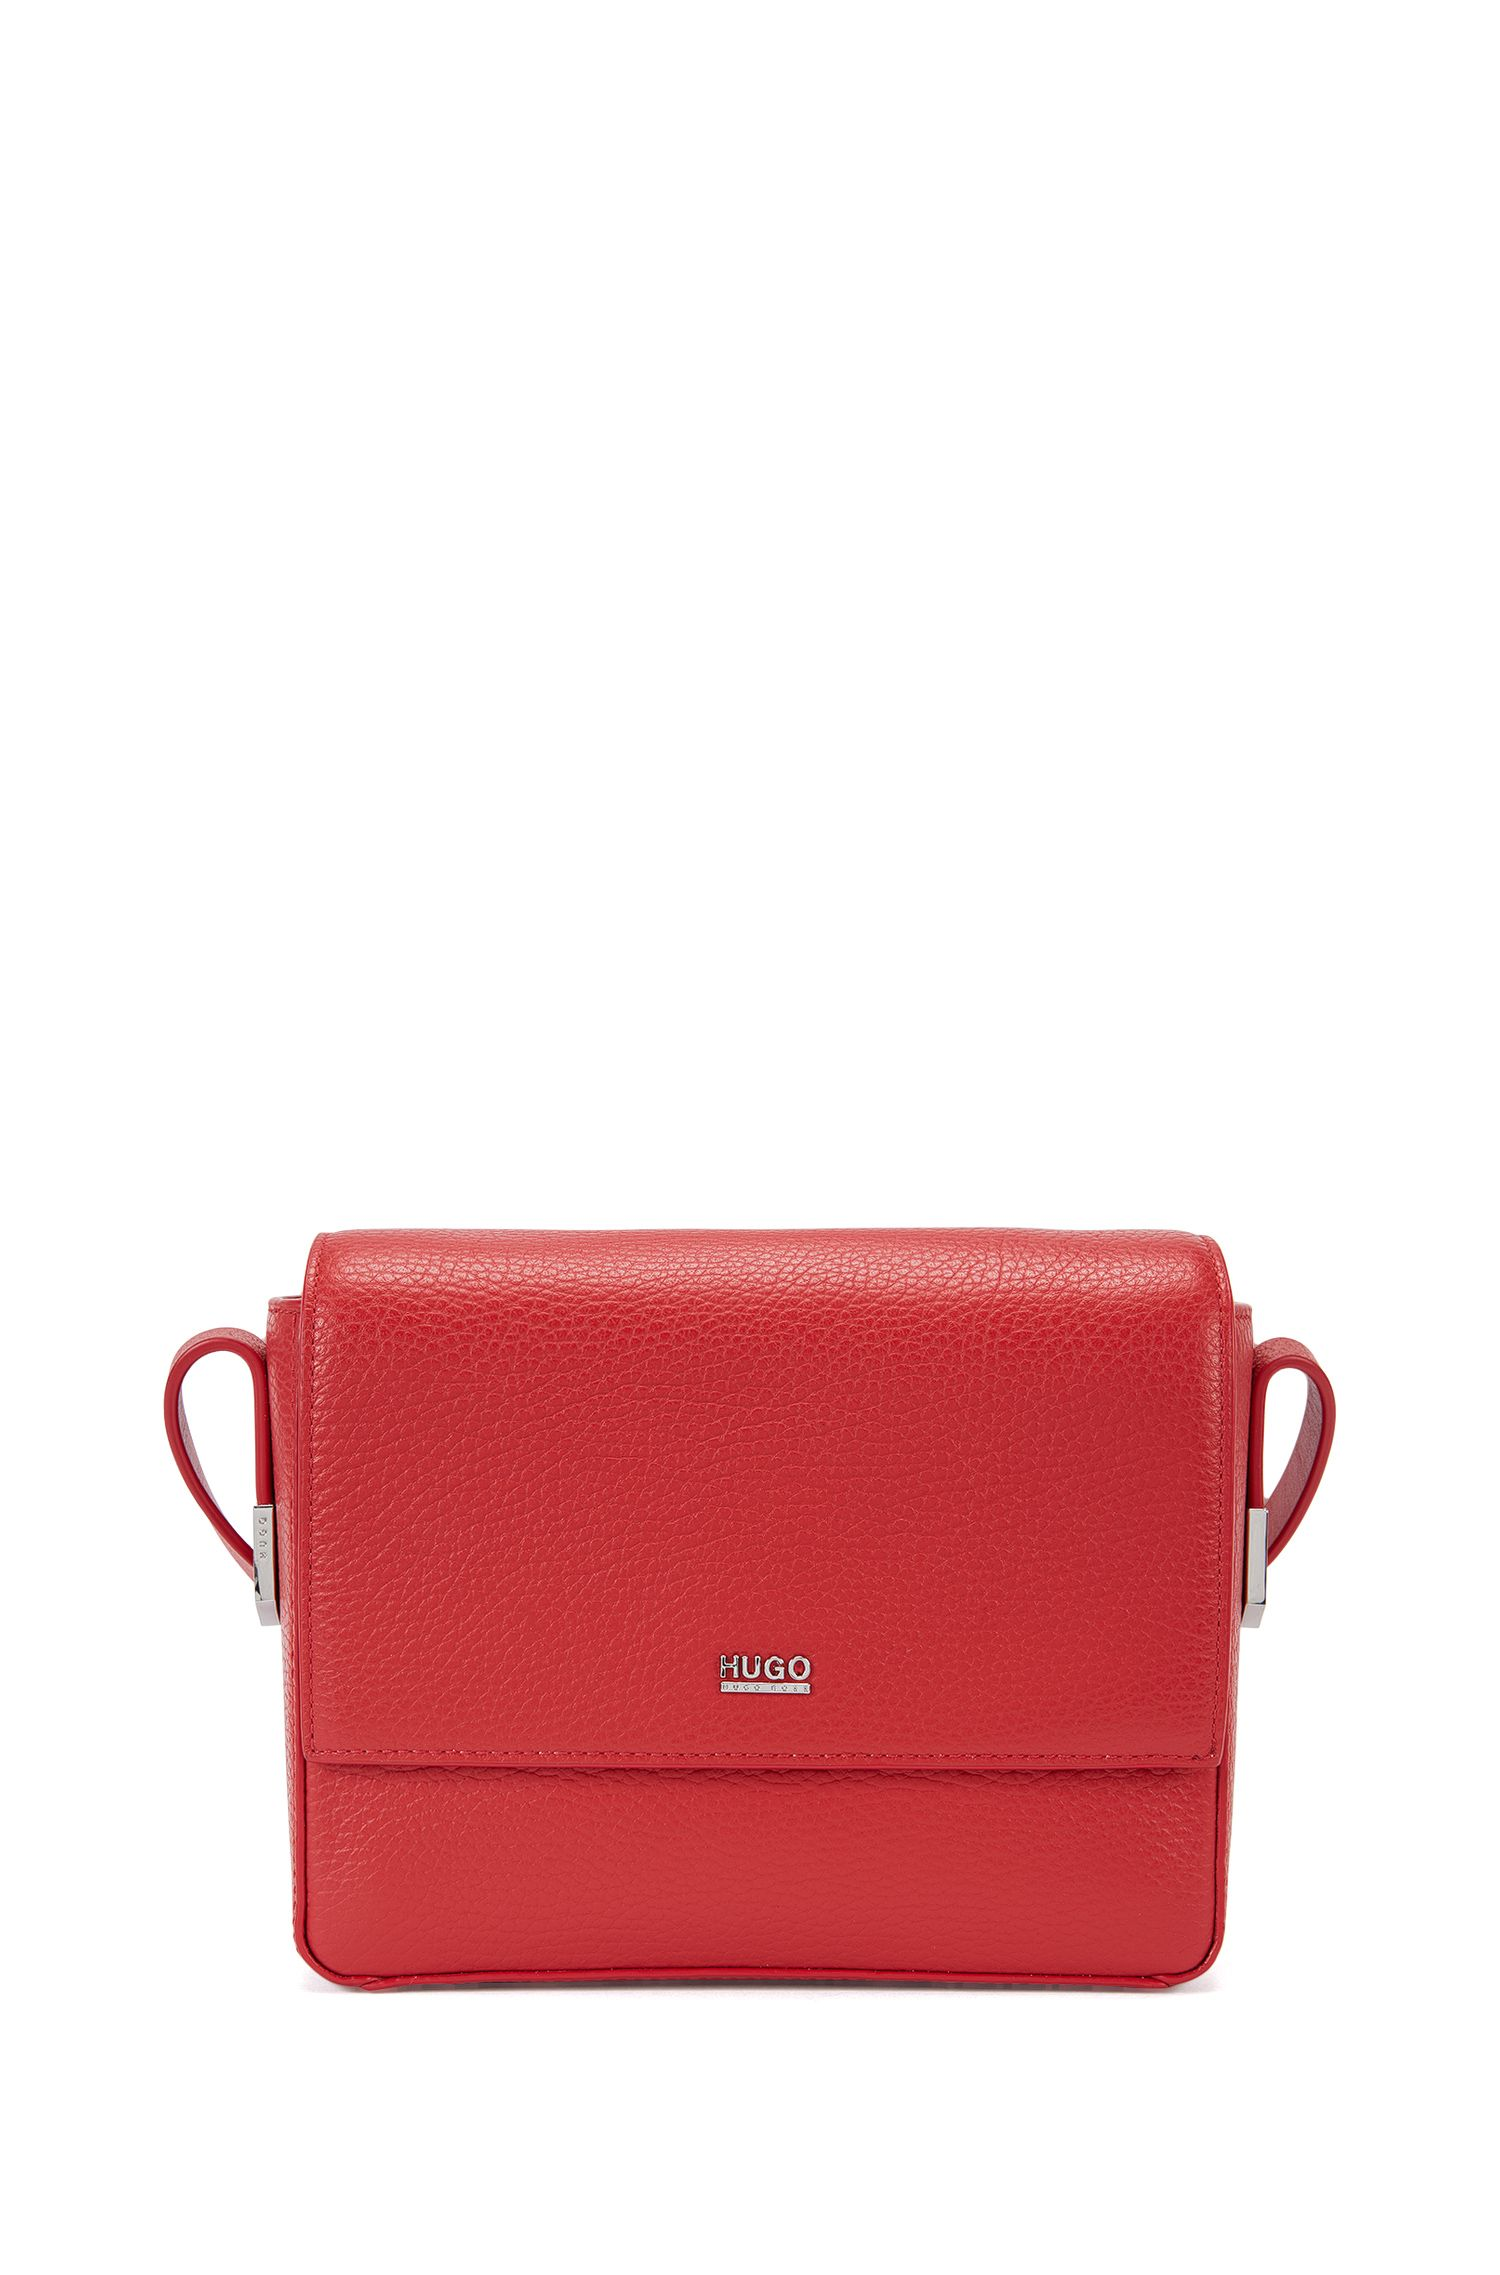 Urban cross-body bag in textured leather